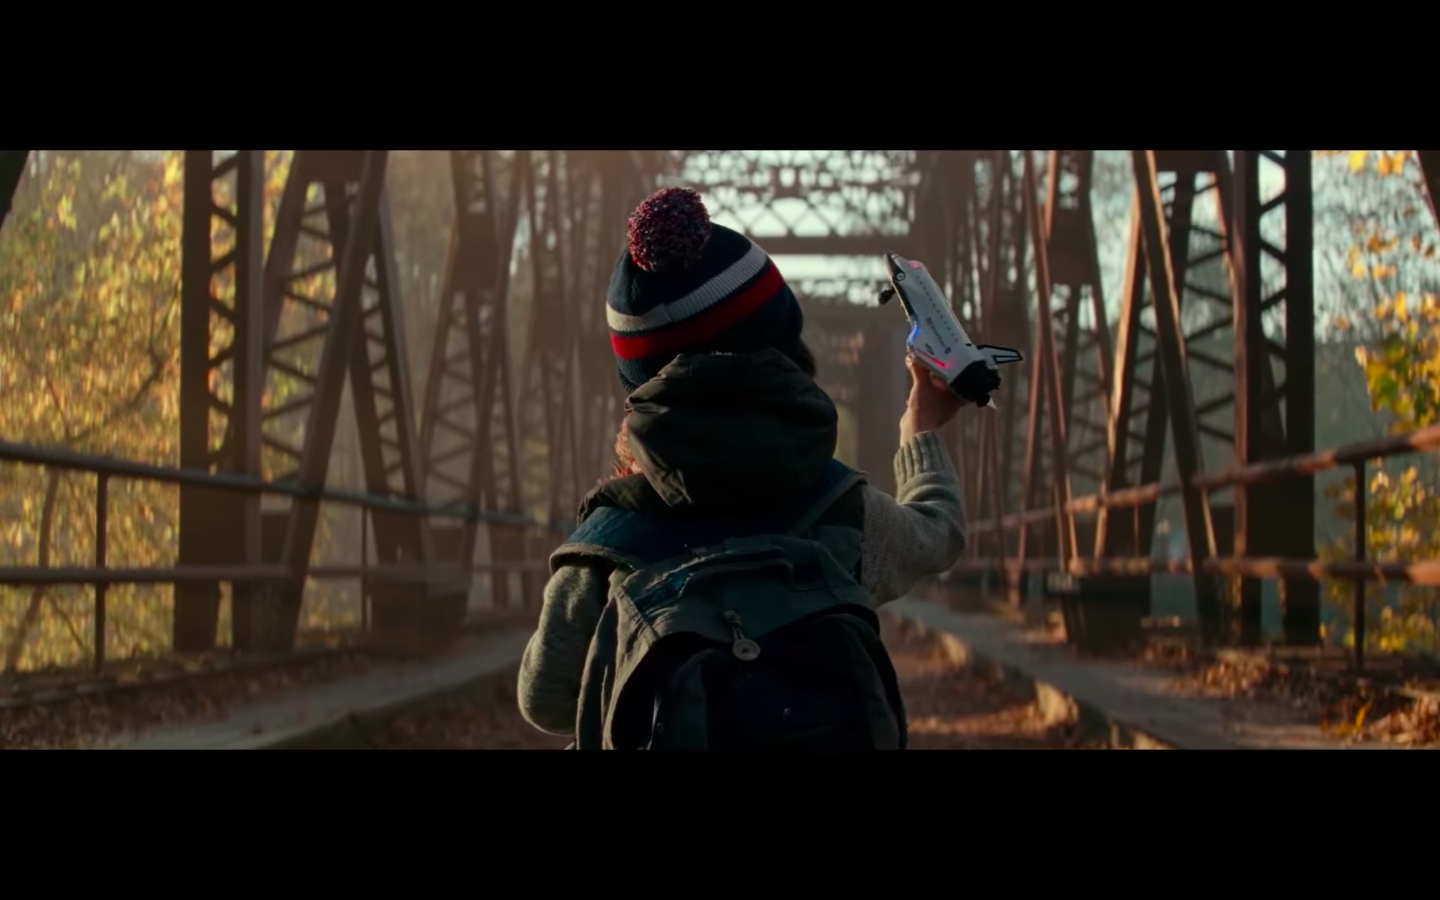 A shot of a little boy from behind. He stands in front of a bridge wearing a knit cap, vest, and backpack. His right hand is raised, and he holds a toy rocket.